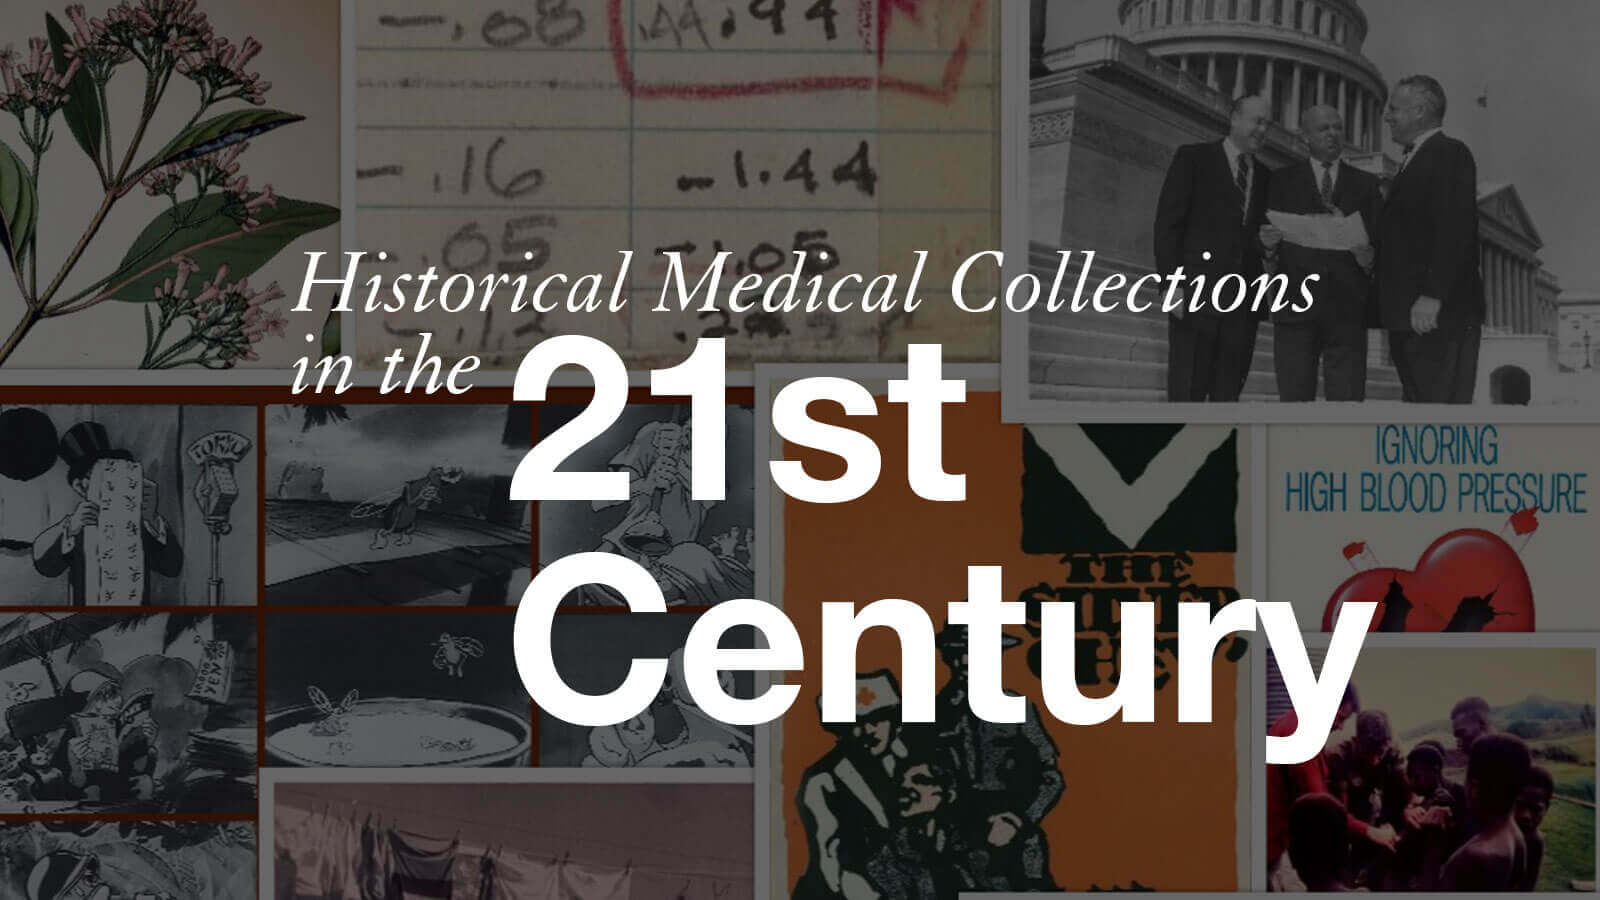 Historical Medical Collections in the 21st Century